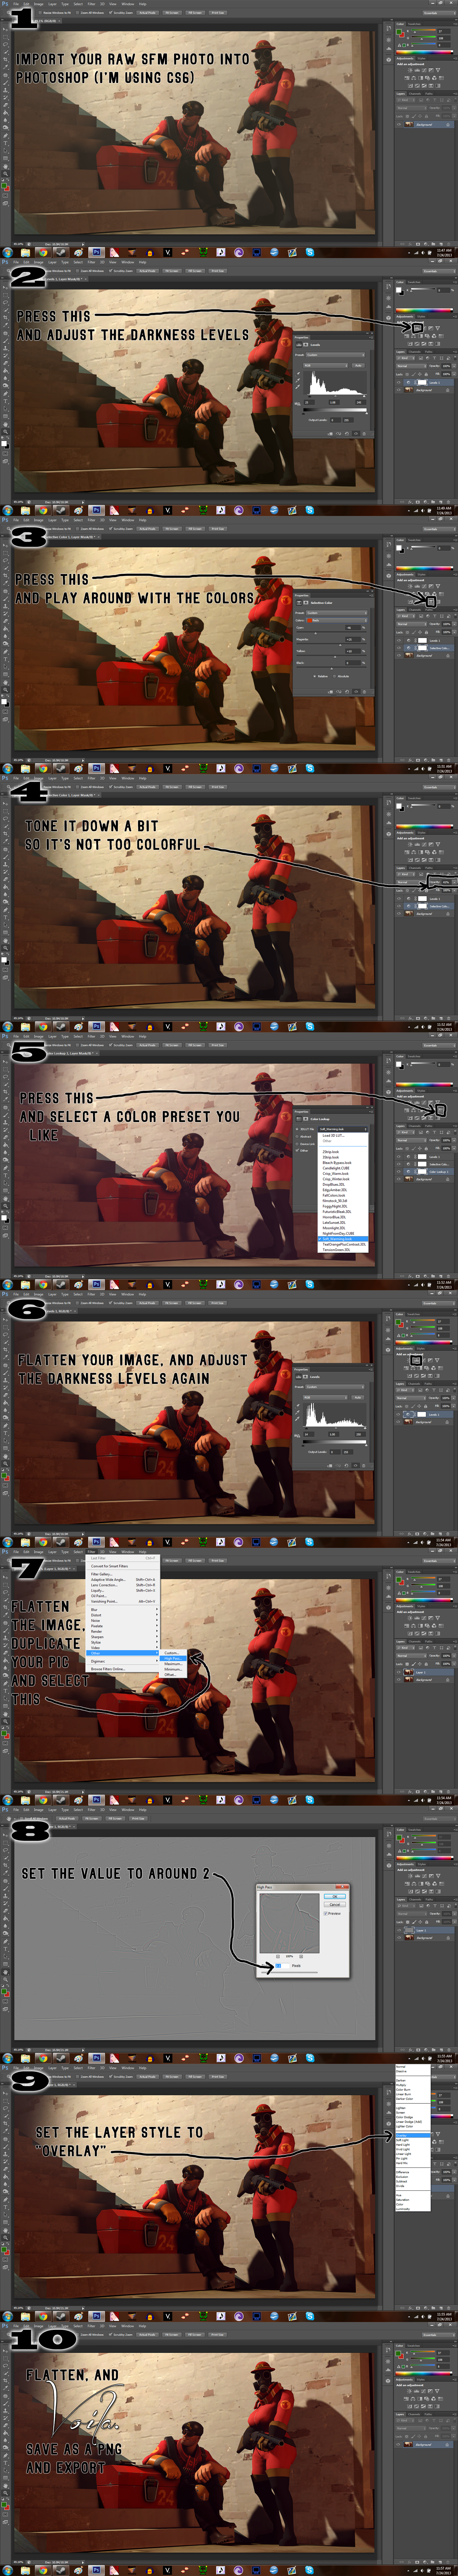 ... How to Edit SFM Pictures in Photoshop by Robogineer & How to Edit SFM Pictures in Photoshop by Robogineer on DeviantArt azcodes.com